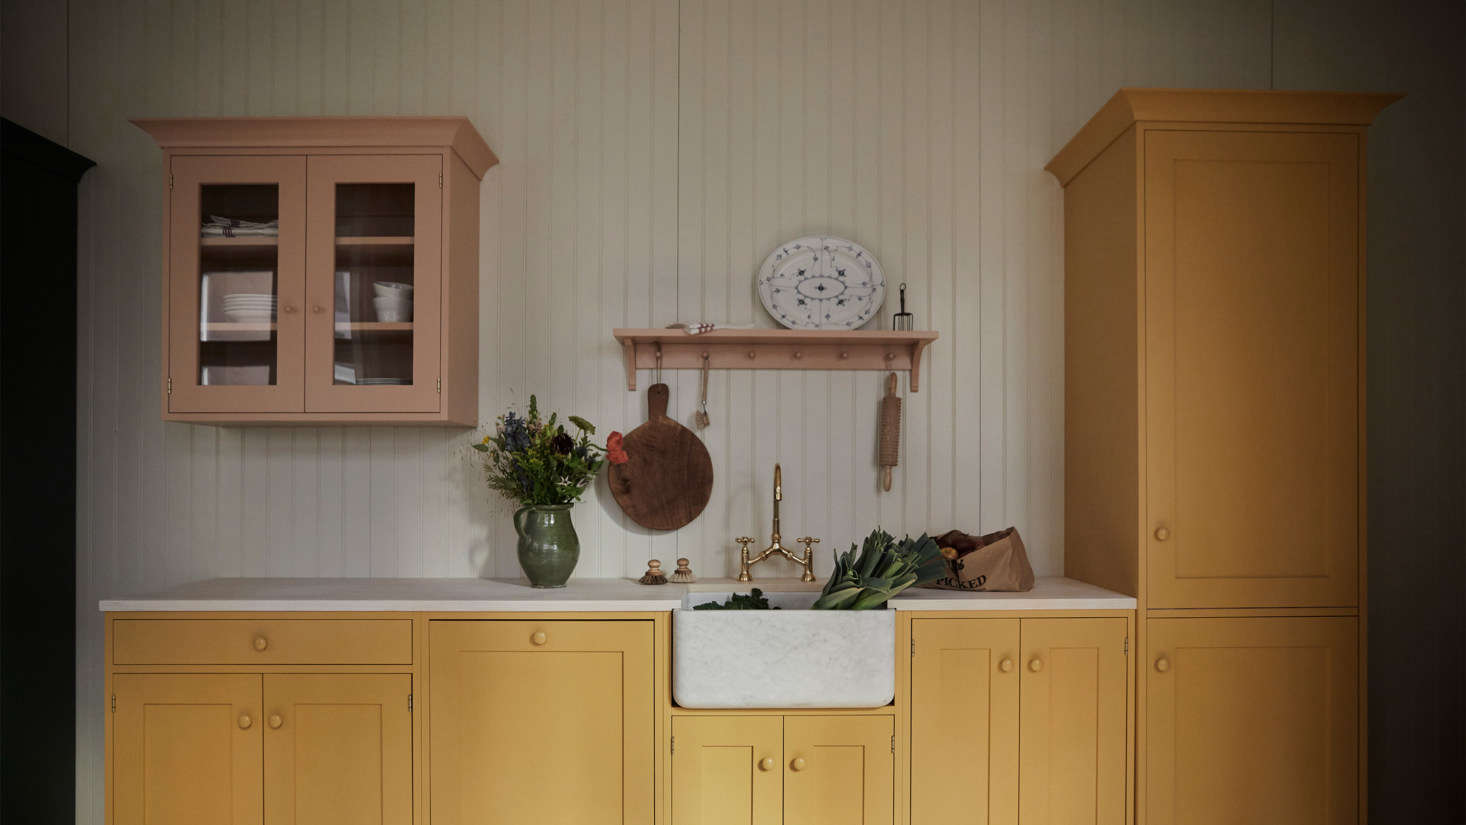 Julie discovered a lovely Easter-ready kitchen by a new-to-us Swedish kitchen maker. See Kitchen of the Week: A Pastel Kitchen Inspired by Swedish Artist Carl Larsson.